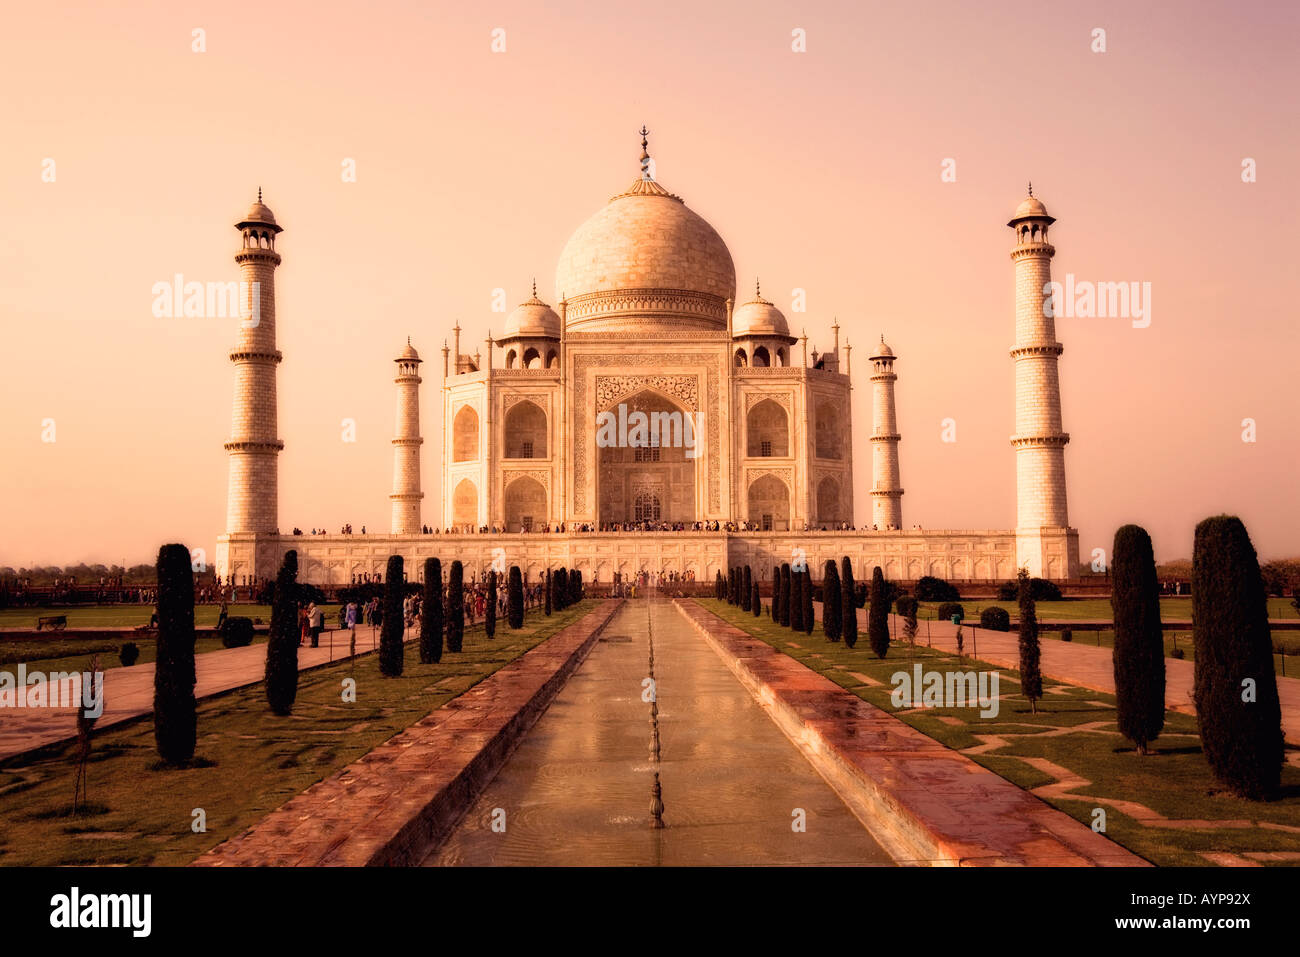 Taj Mahal, Agra, Inde en sépia Photo Stock